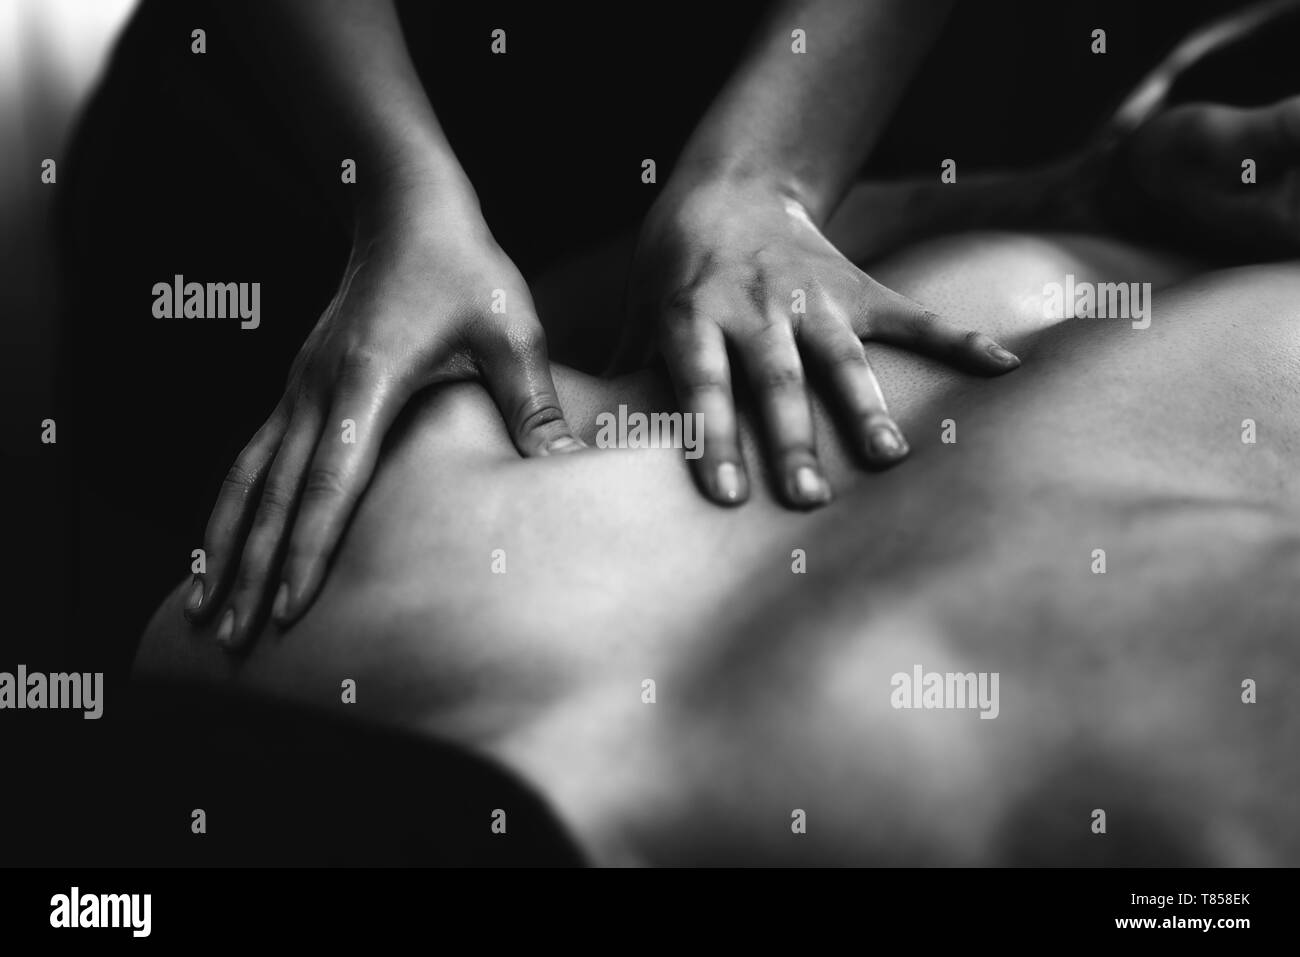 Shoulder massage - Stock Image